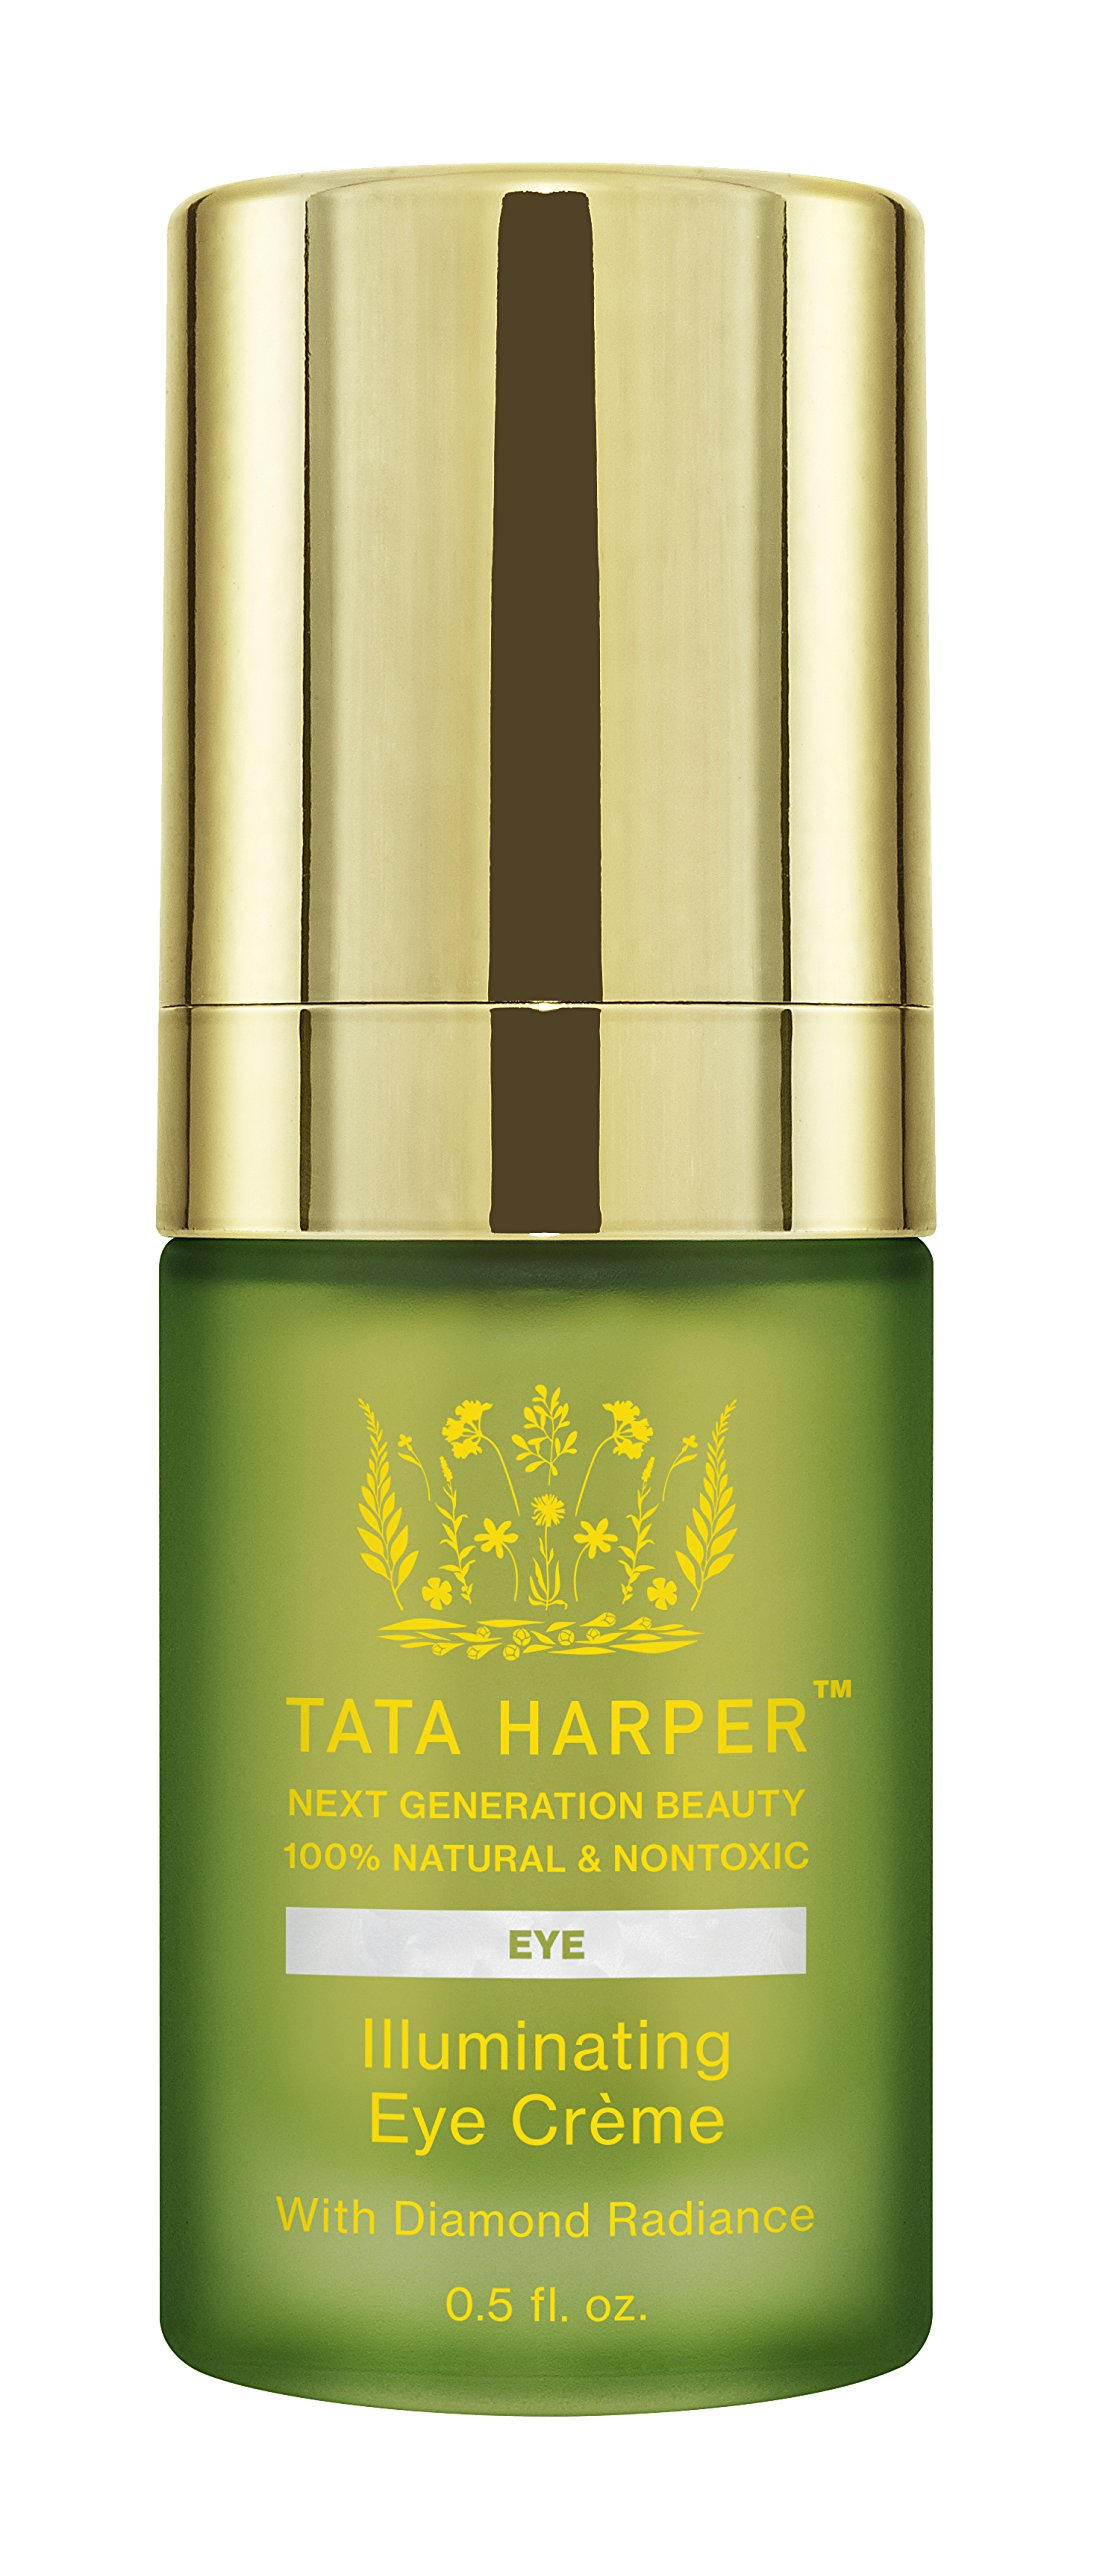 Tata Harper Illuminating Eye Crème | 100% Natural & Nontoxic | Age-Defying Eye Treatement with Diamond Radiance | .5oz